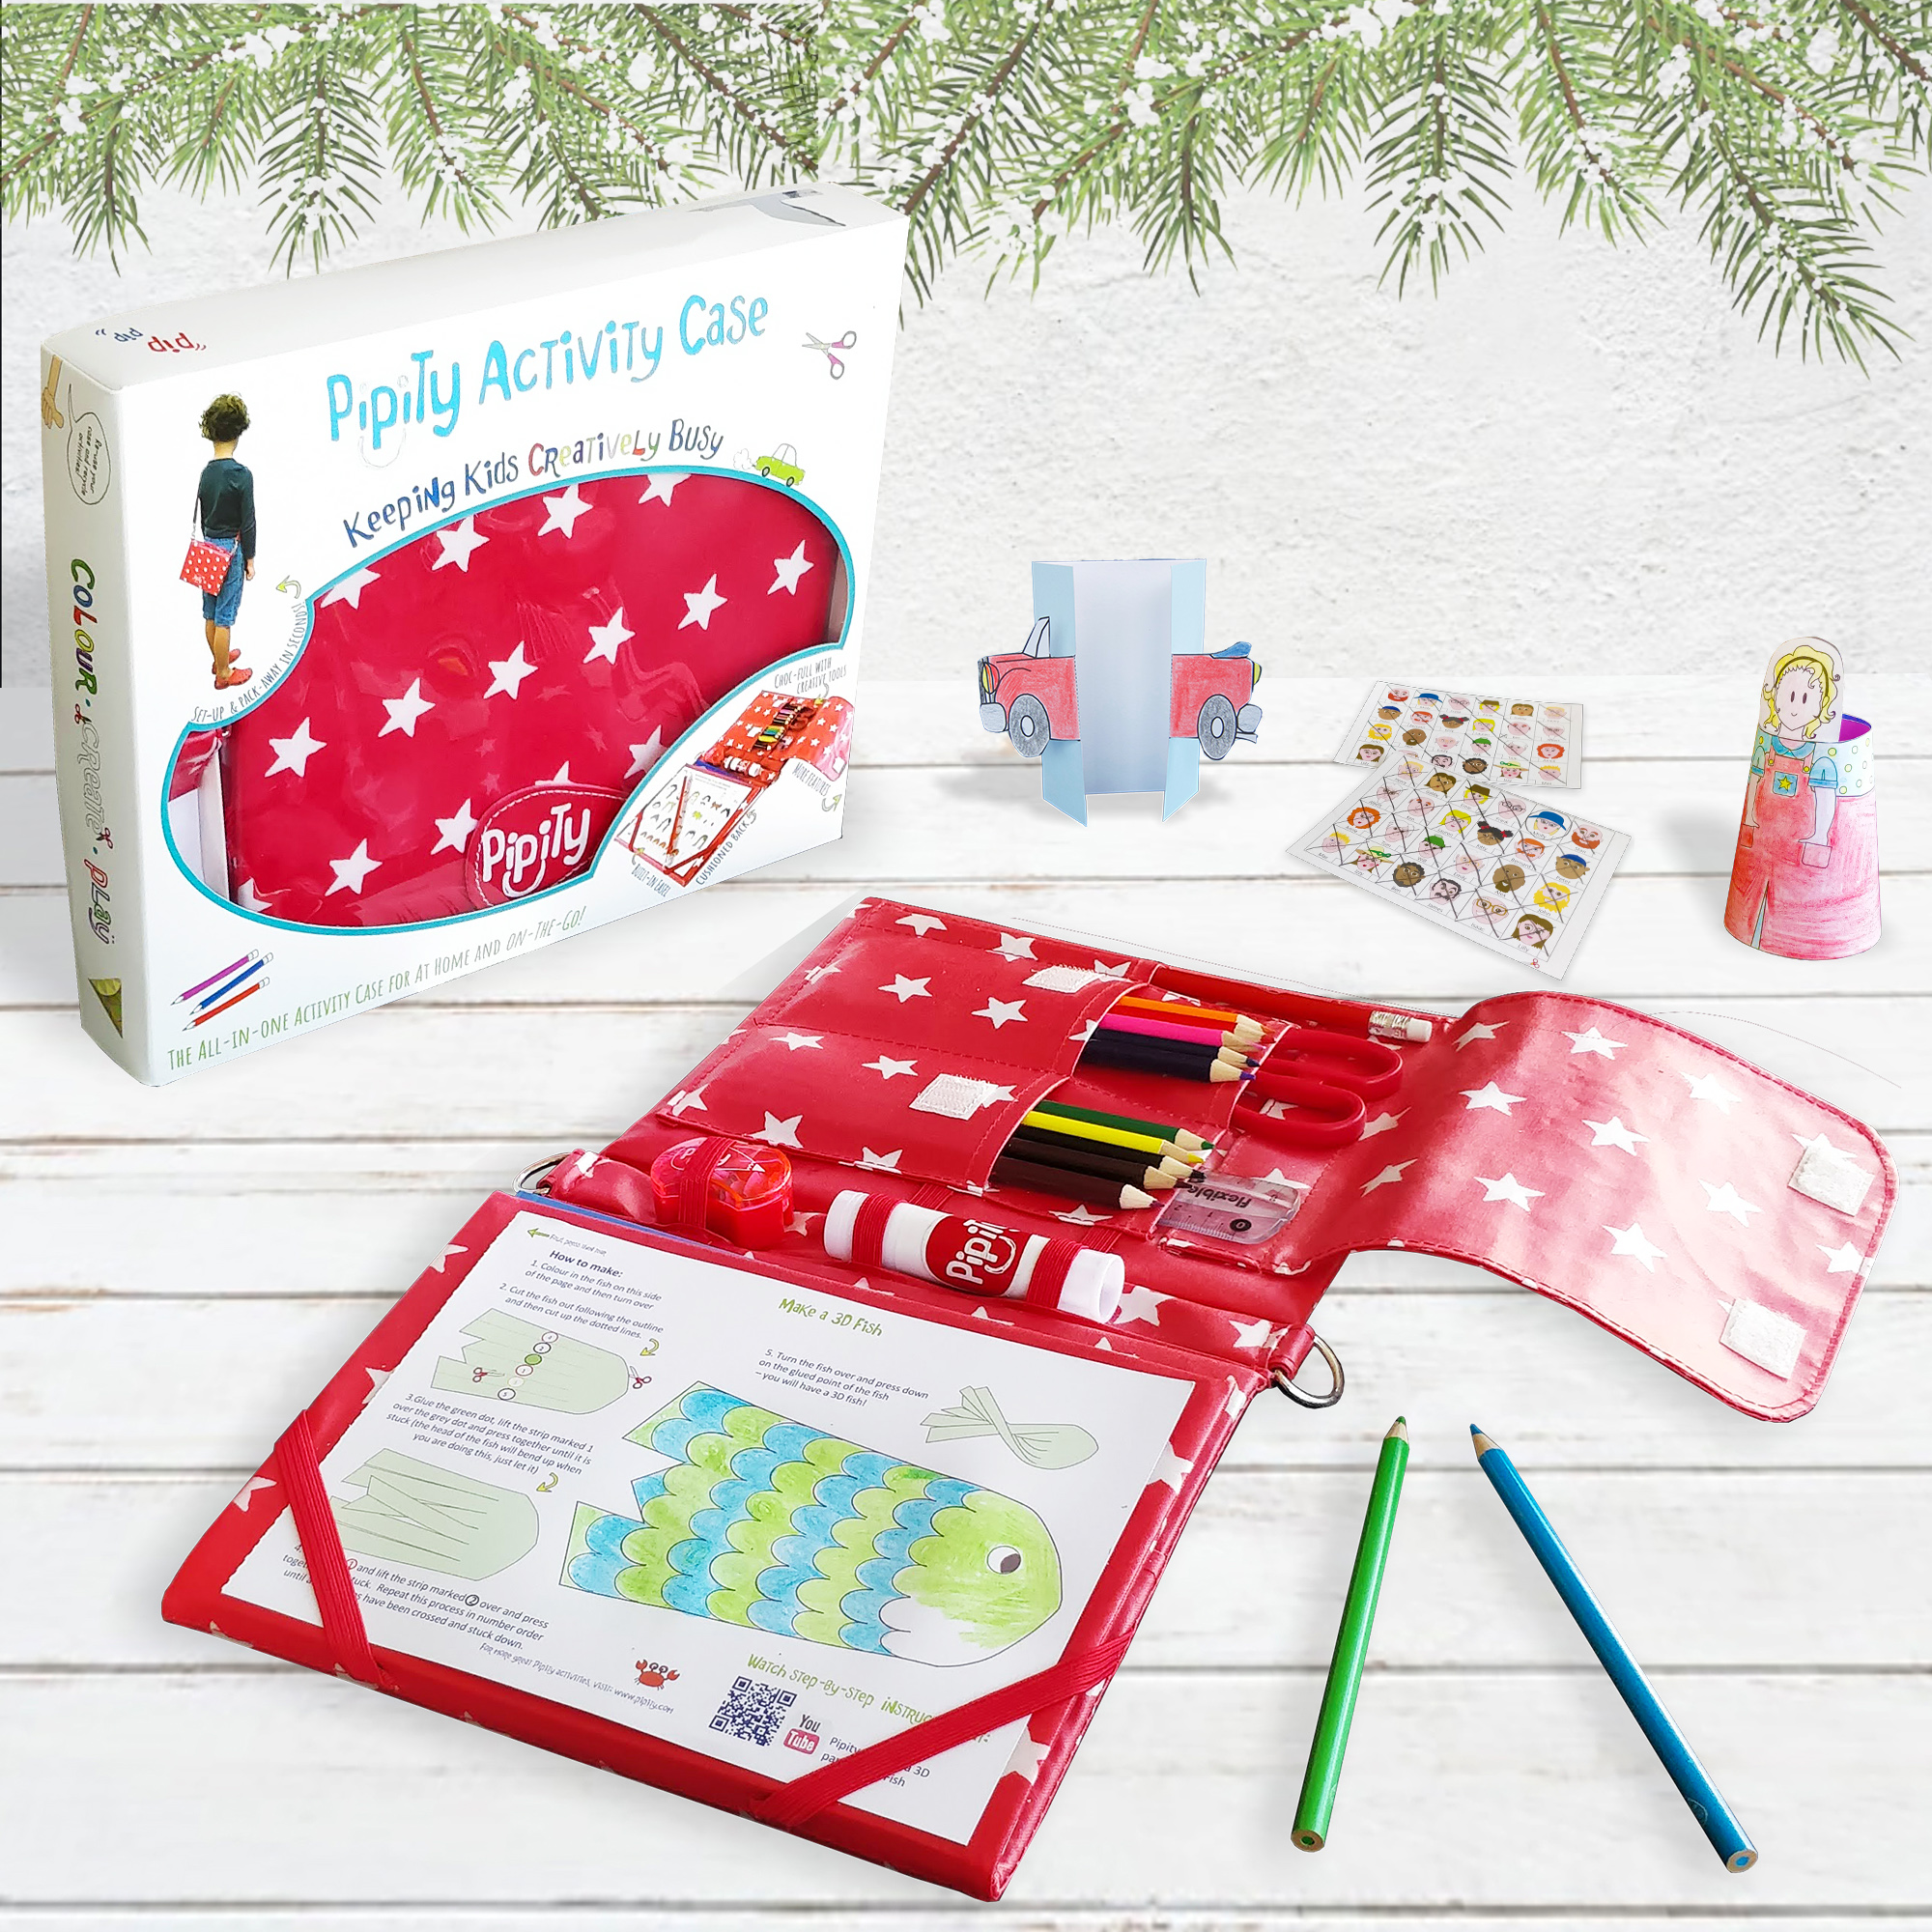 Pipity childrens activity case